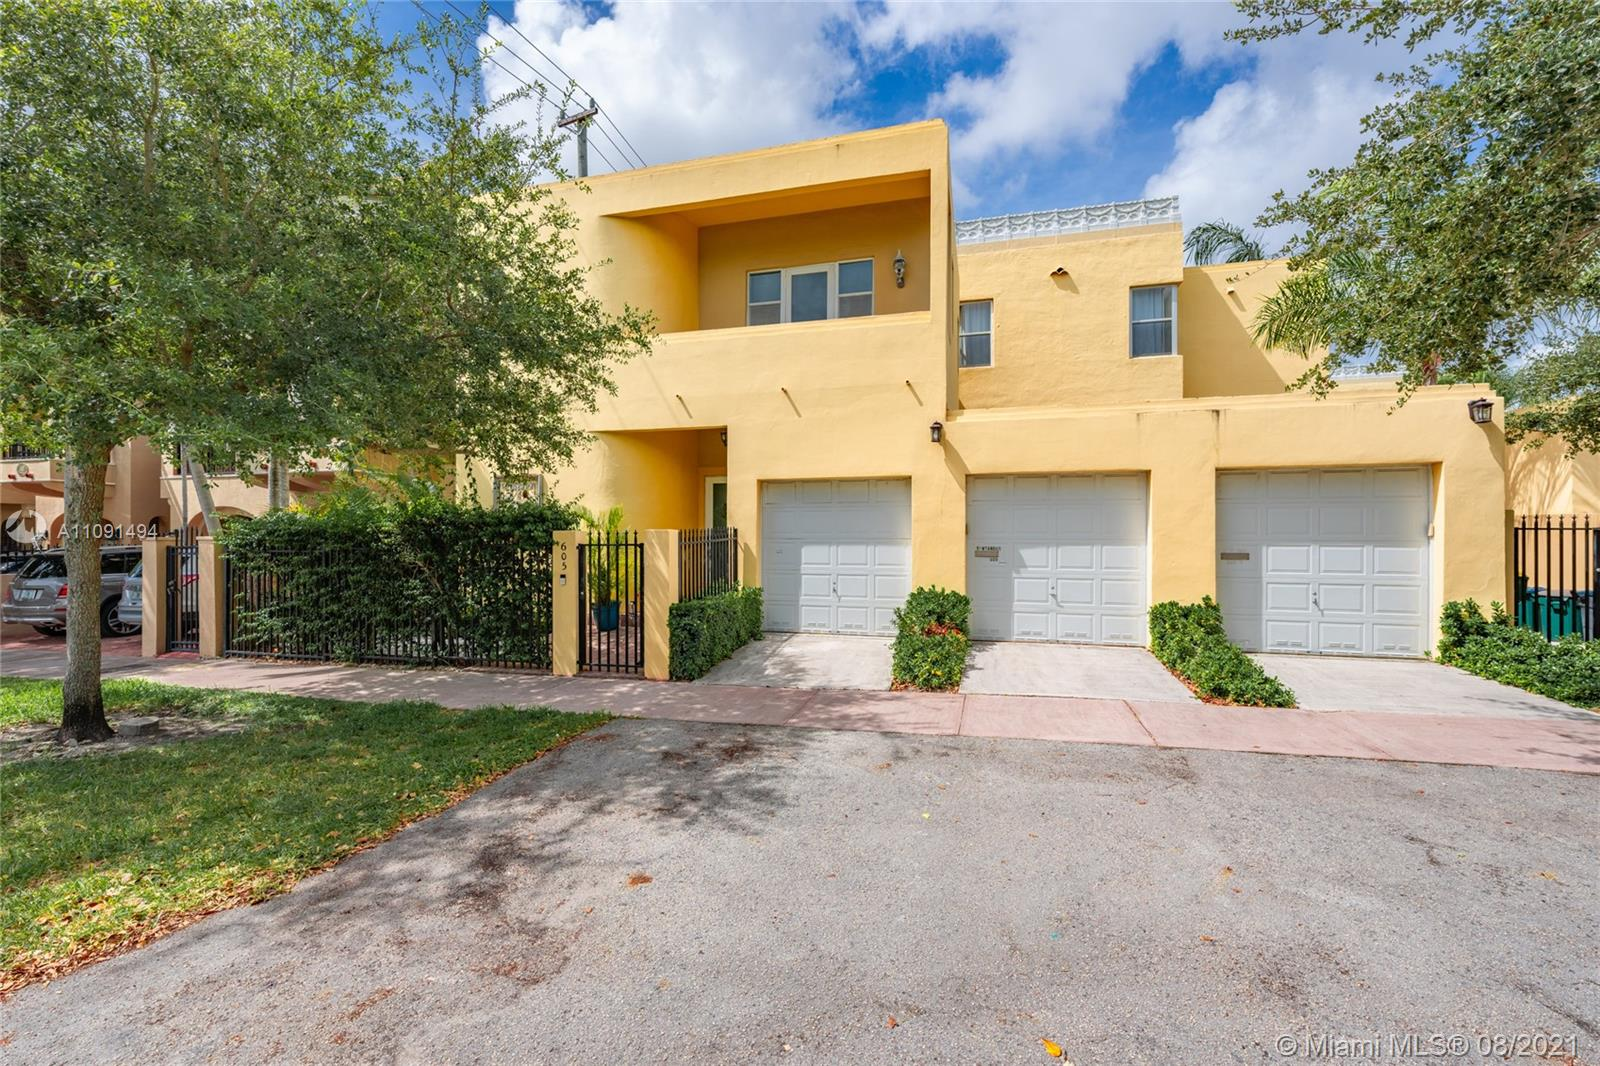 Welcome home to this one of a kind located in the heart of Coral Gables. Beautifully updated Art Deco townhome nestled on the quiet Segovia street. Walking distance to Merrick Park, The Miracle Mile, Venetian Pool, Granada Golf Course, and more so that you can enjoy neighborhood walks and entertainment. Featuring 2 bedrooms and 2.5 bathrooms, one space in a shared 2 car garage, and a bonus den not counted in the square footage on record (actual sqft is 1795) which can easily be used as an office, gym, or playroom! Entertain guests in the screened patio or the lush shared garden. Modern fixtures and impact windows and doors make this a truly turn-key home. Washer/dryer in-unit.